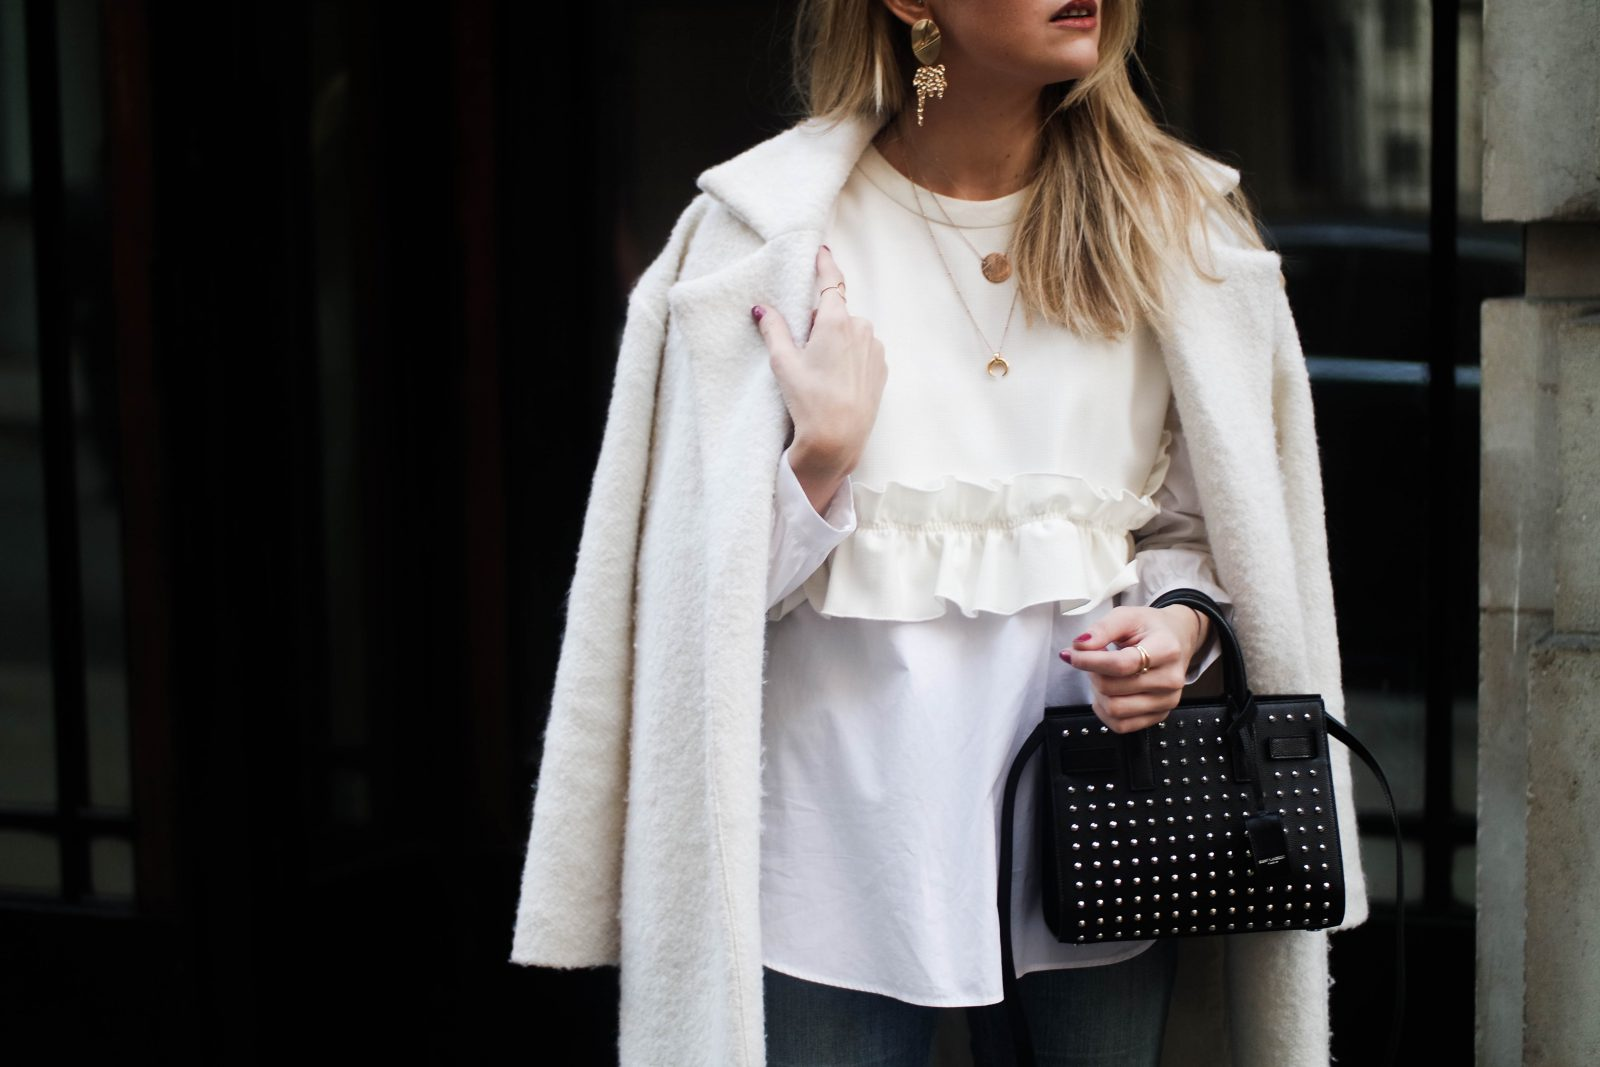 LFW Day 1 - Blogger Style